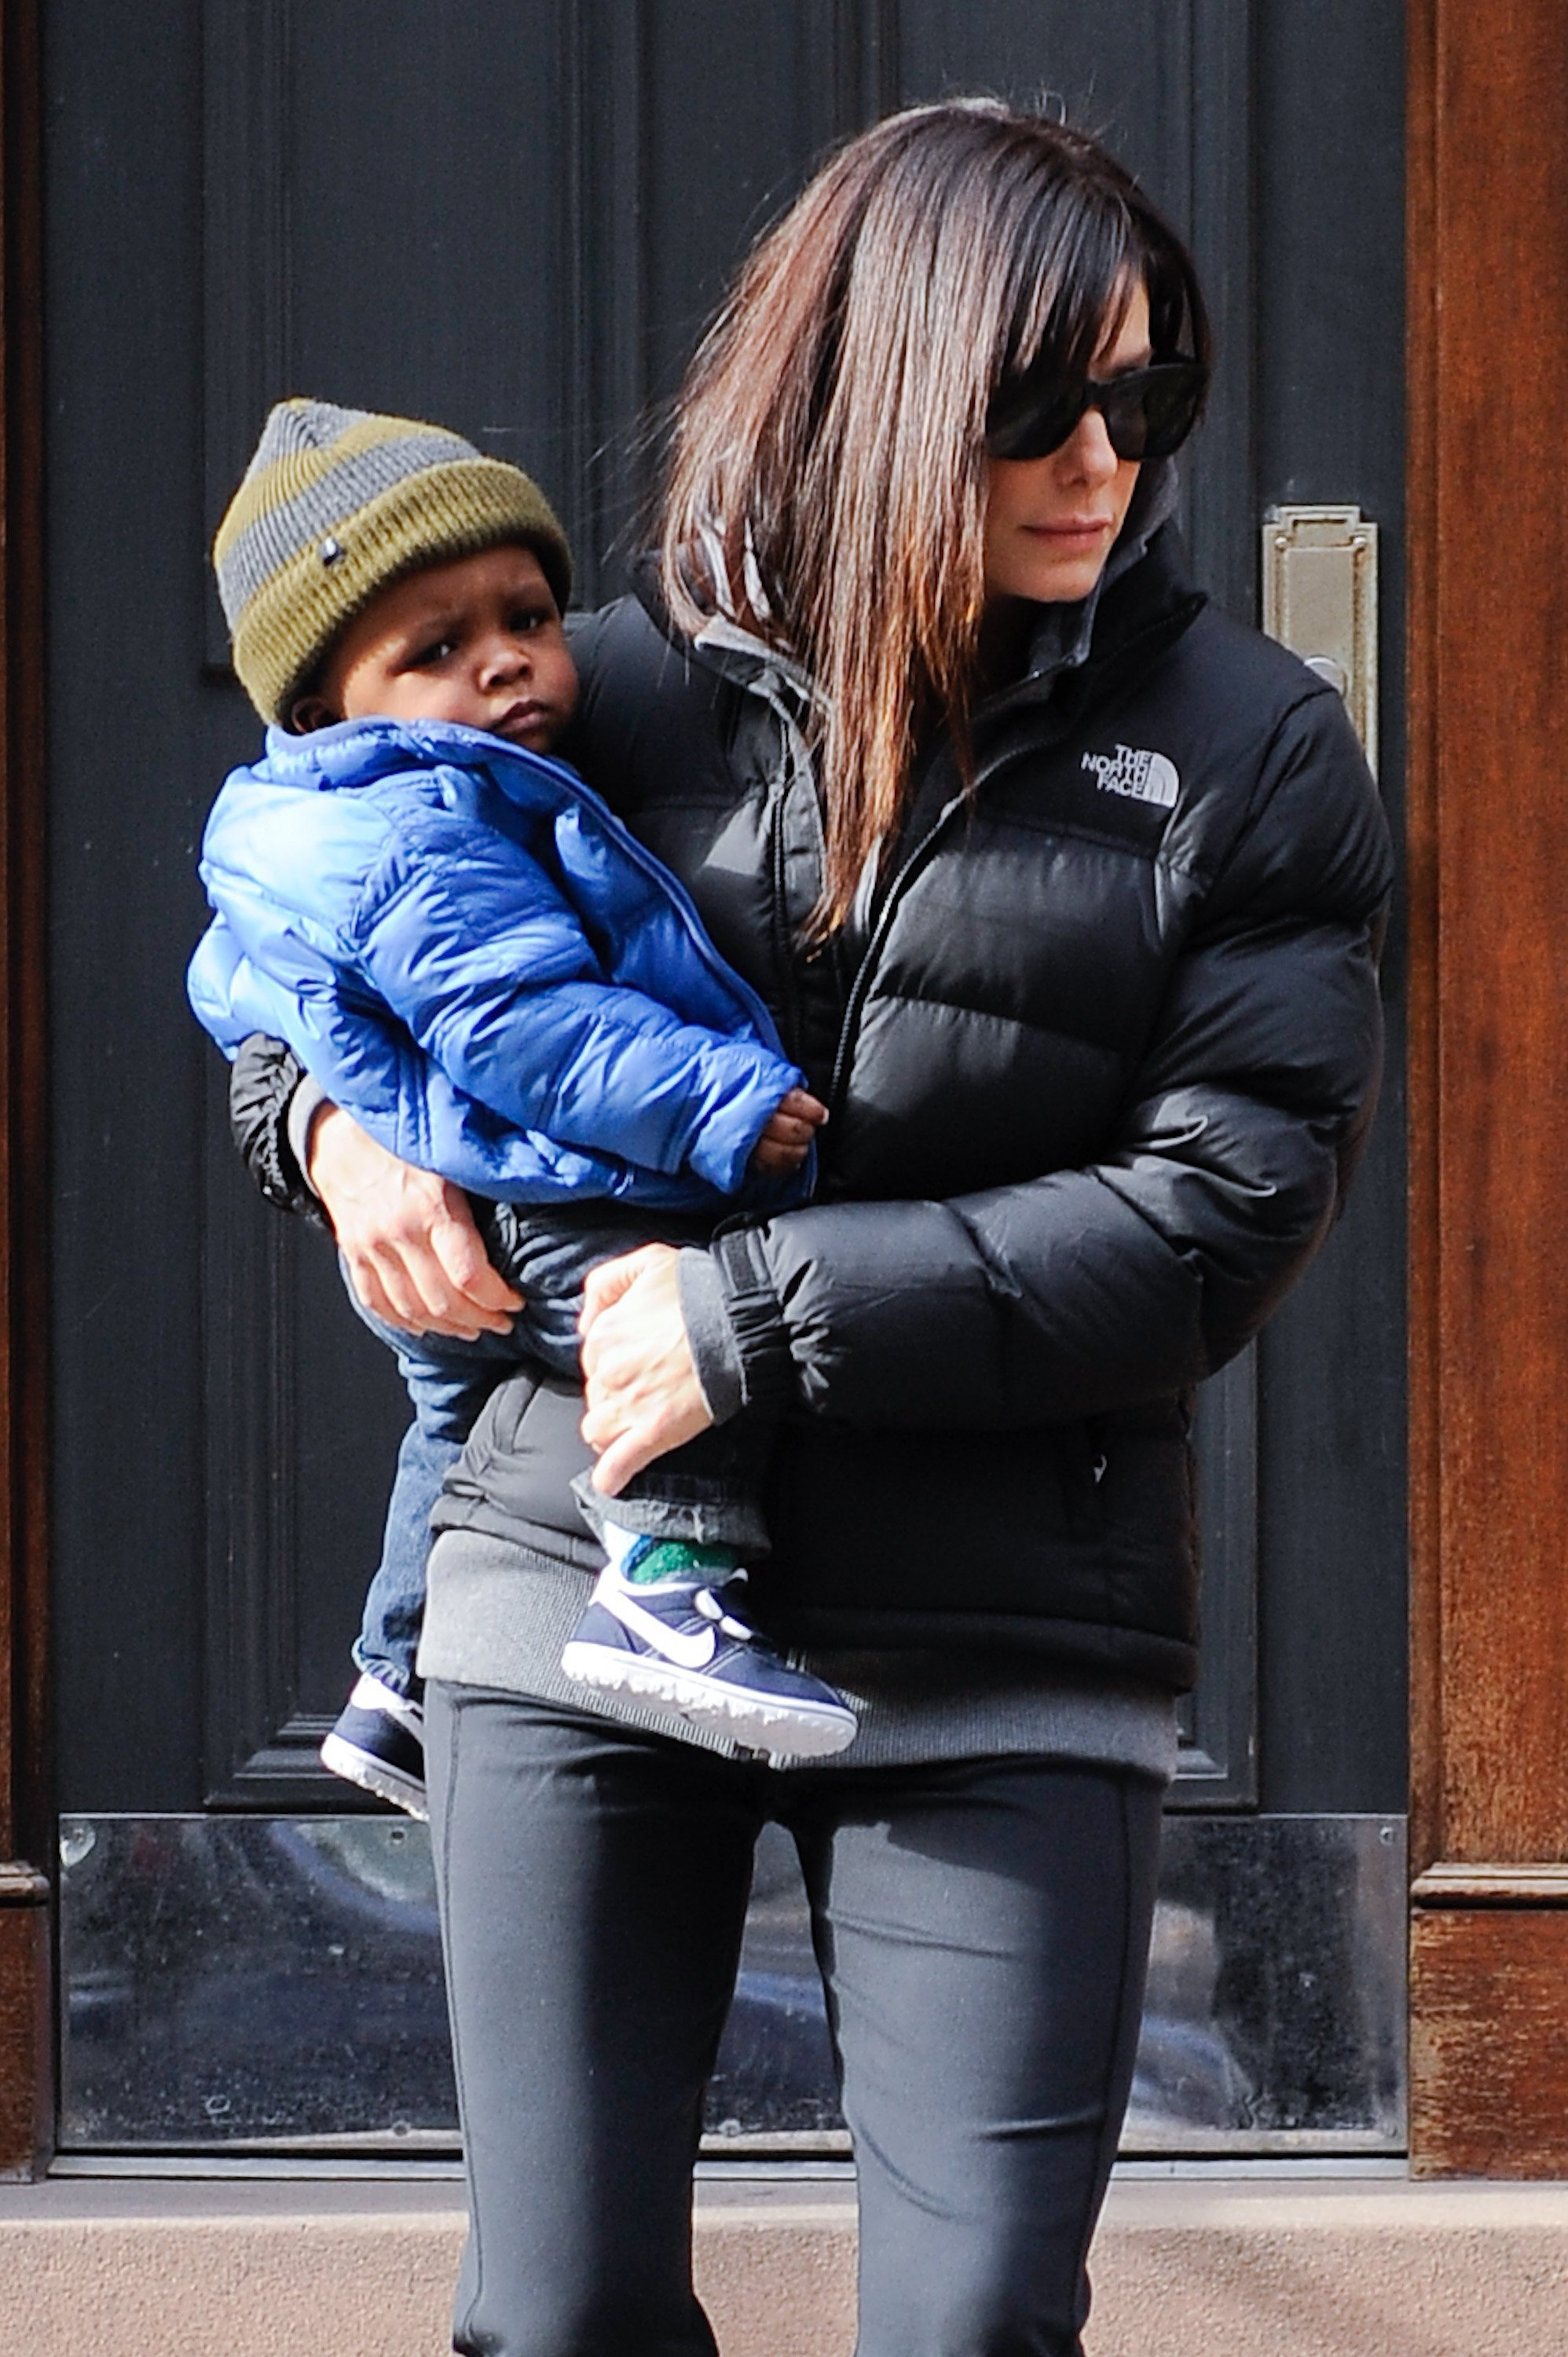 Sandra Bullock and her son Louis Bullock on January 20, 2011 in New York City | Source: Getty Images